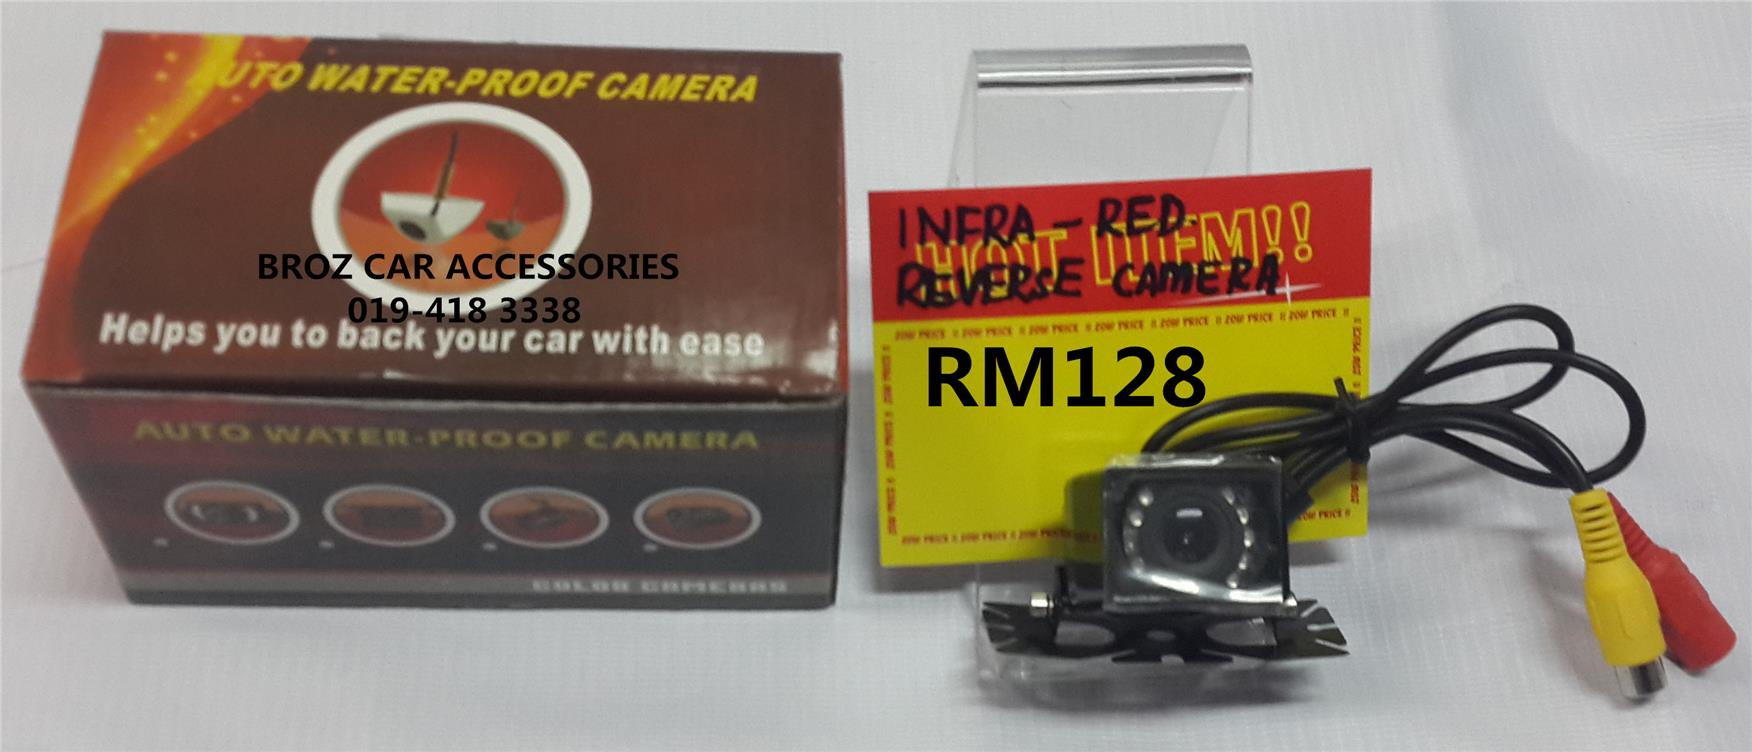 INFRA RED REVERSE CAMERA